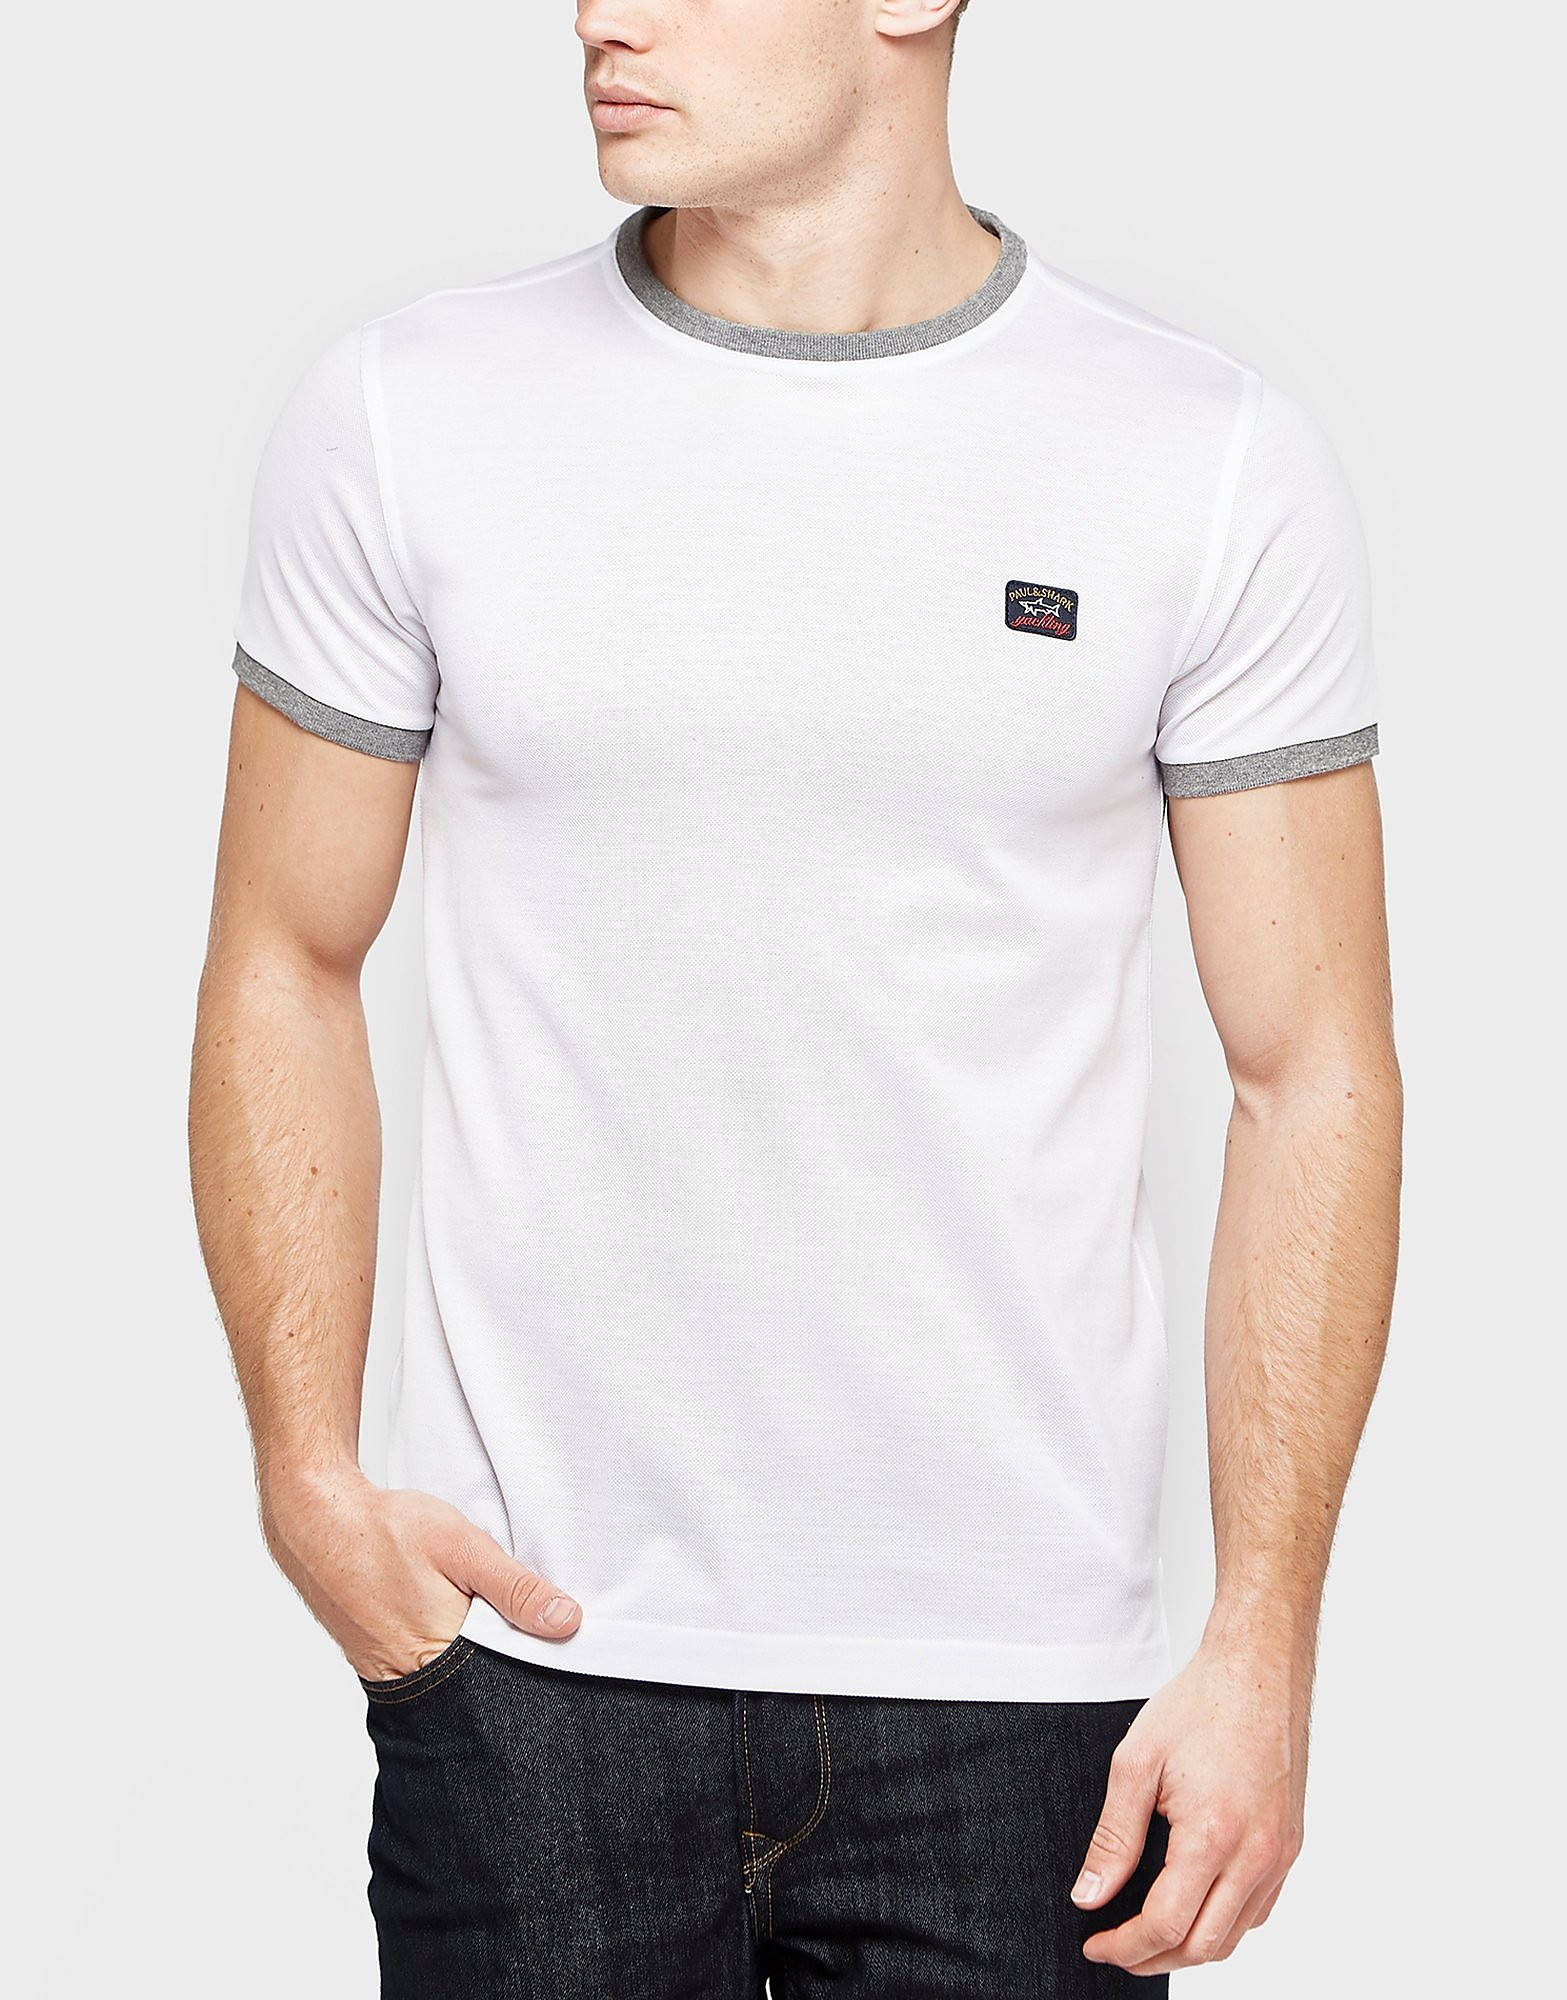 Paul and Shark Ringer Pique Short Sleeve T-Shirt - Exclusive